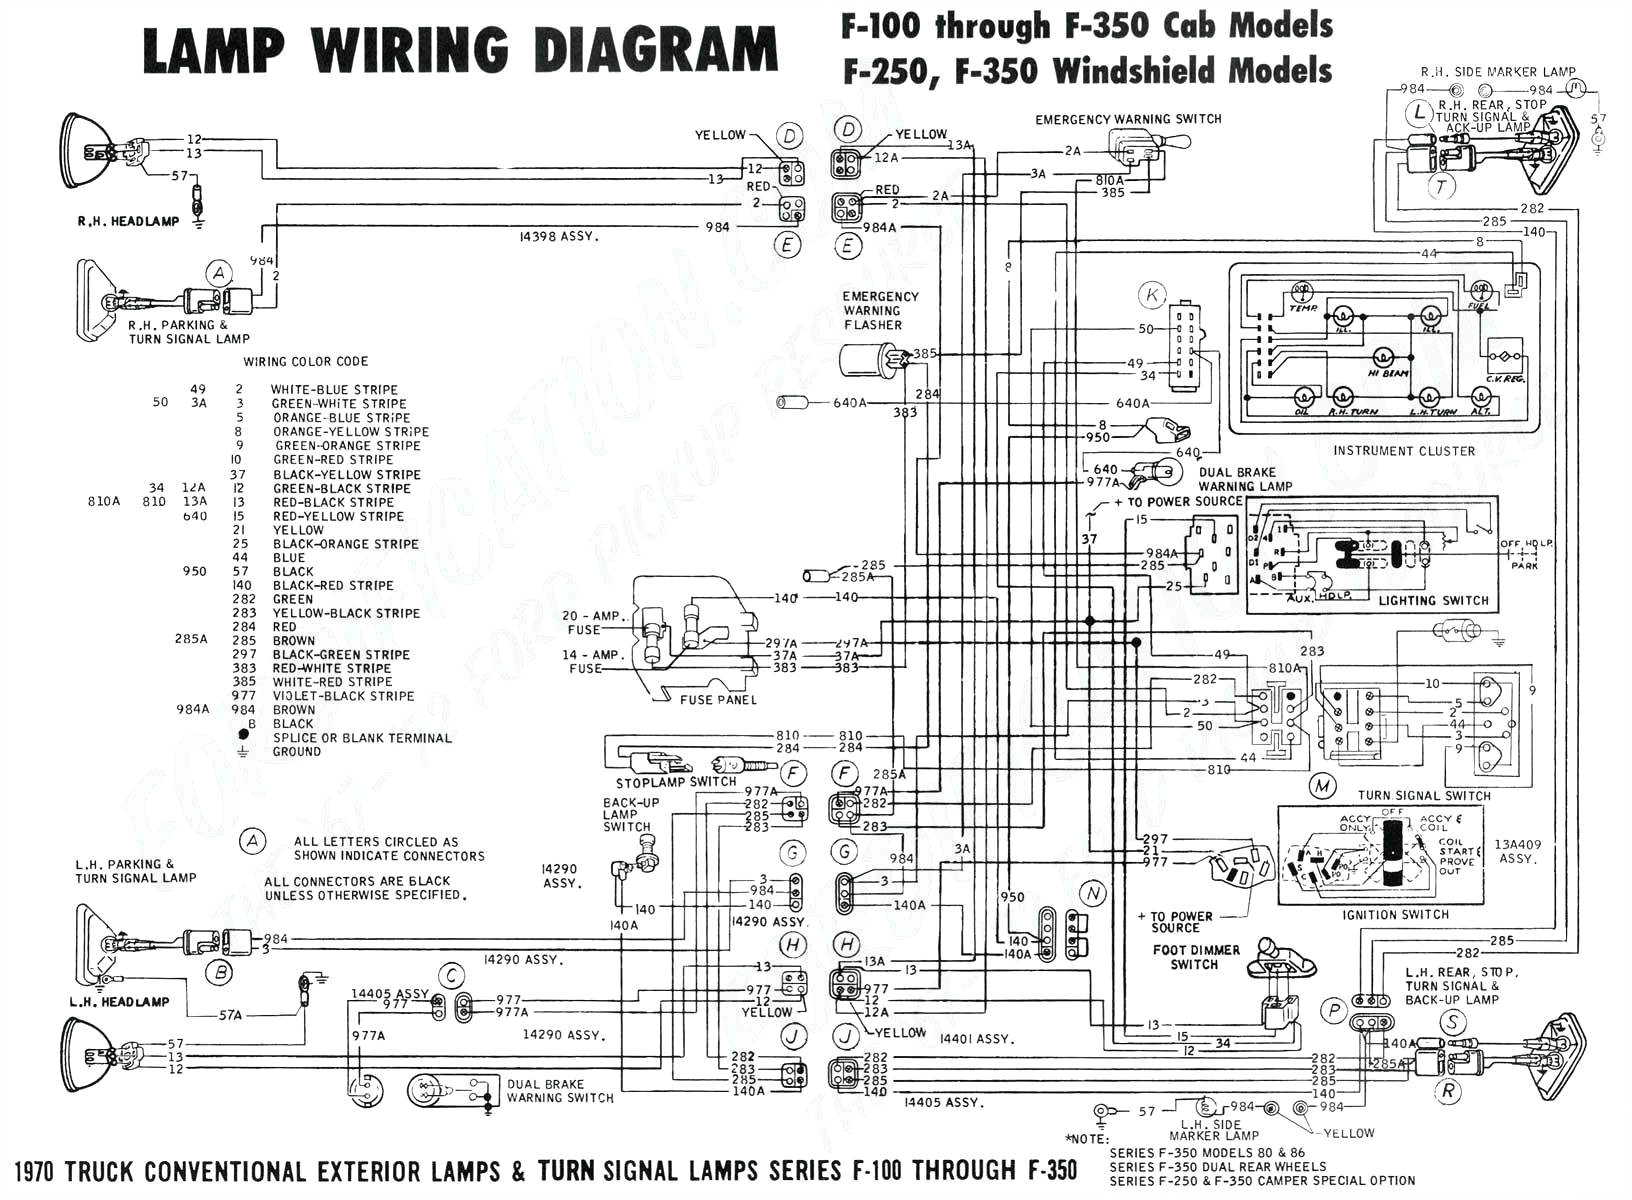 1969 buick wiring diagram as well ford ignition data wiring diagram 69 buick ignition wiring